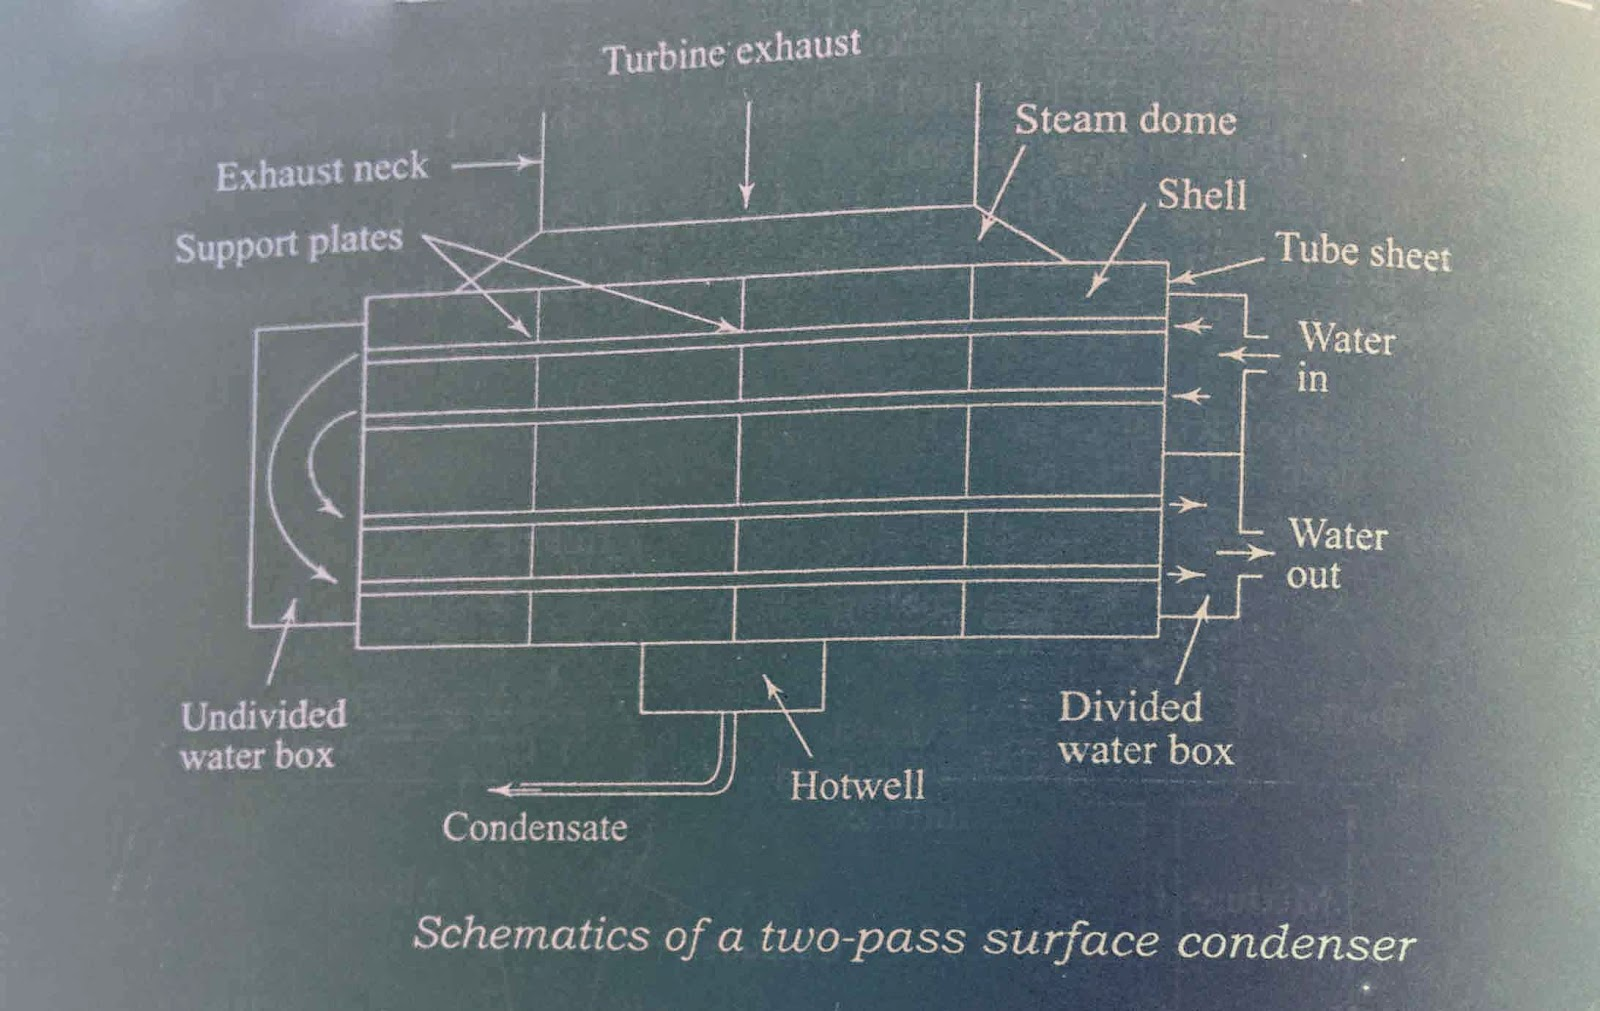 Schematic of two pass surface condenser